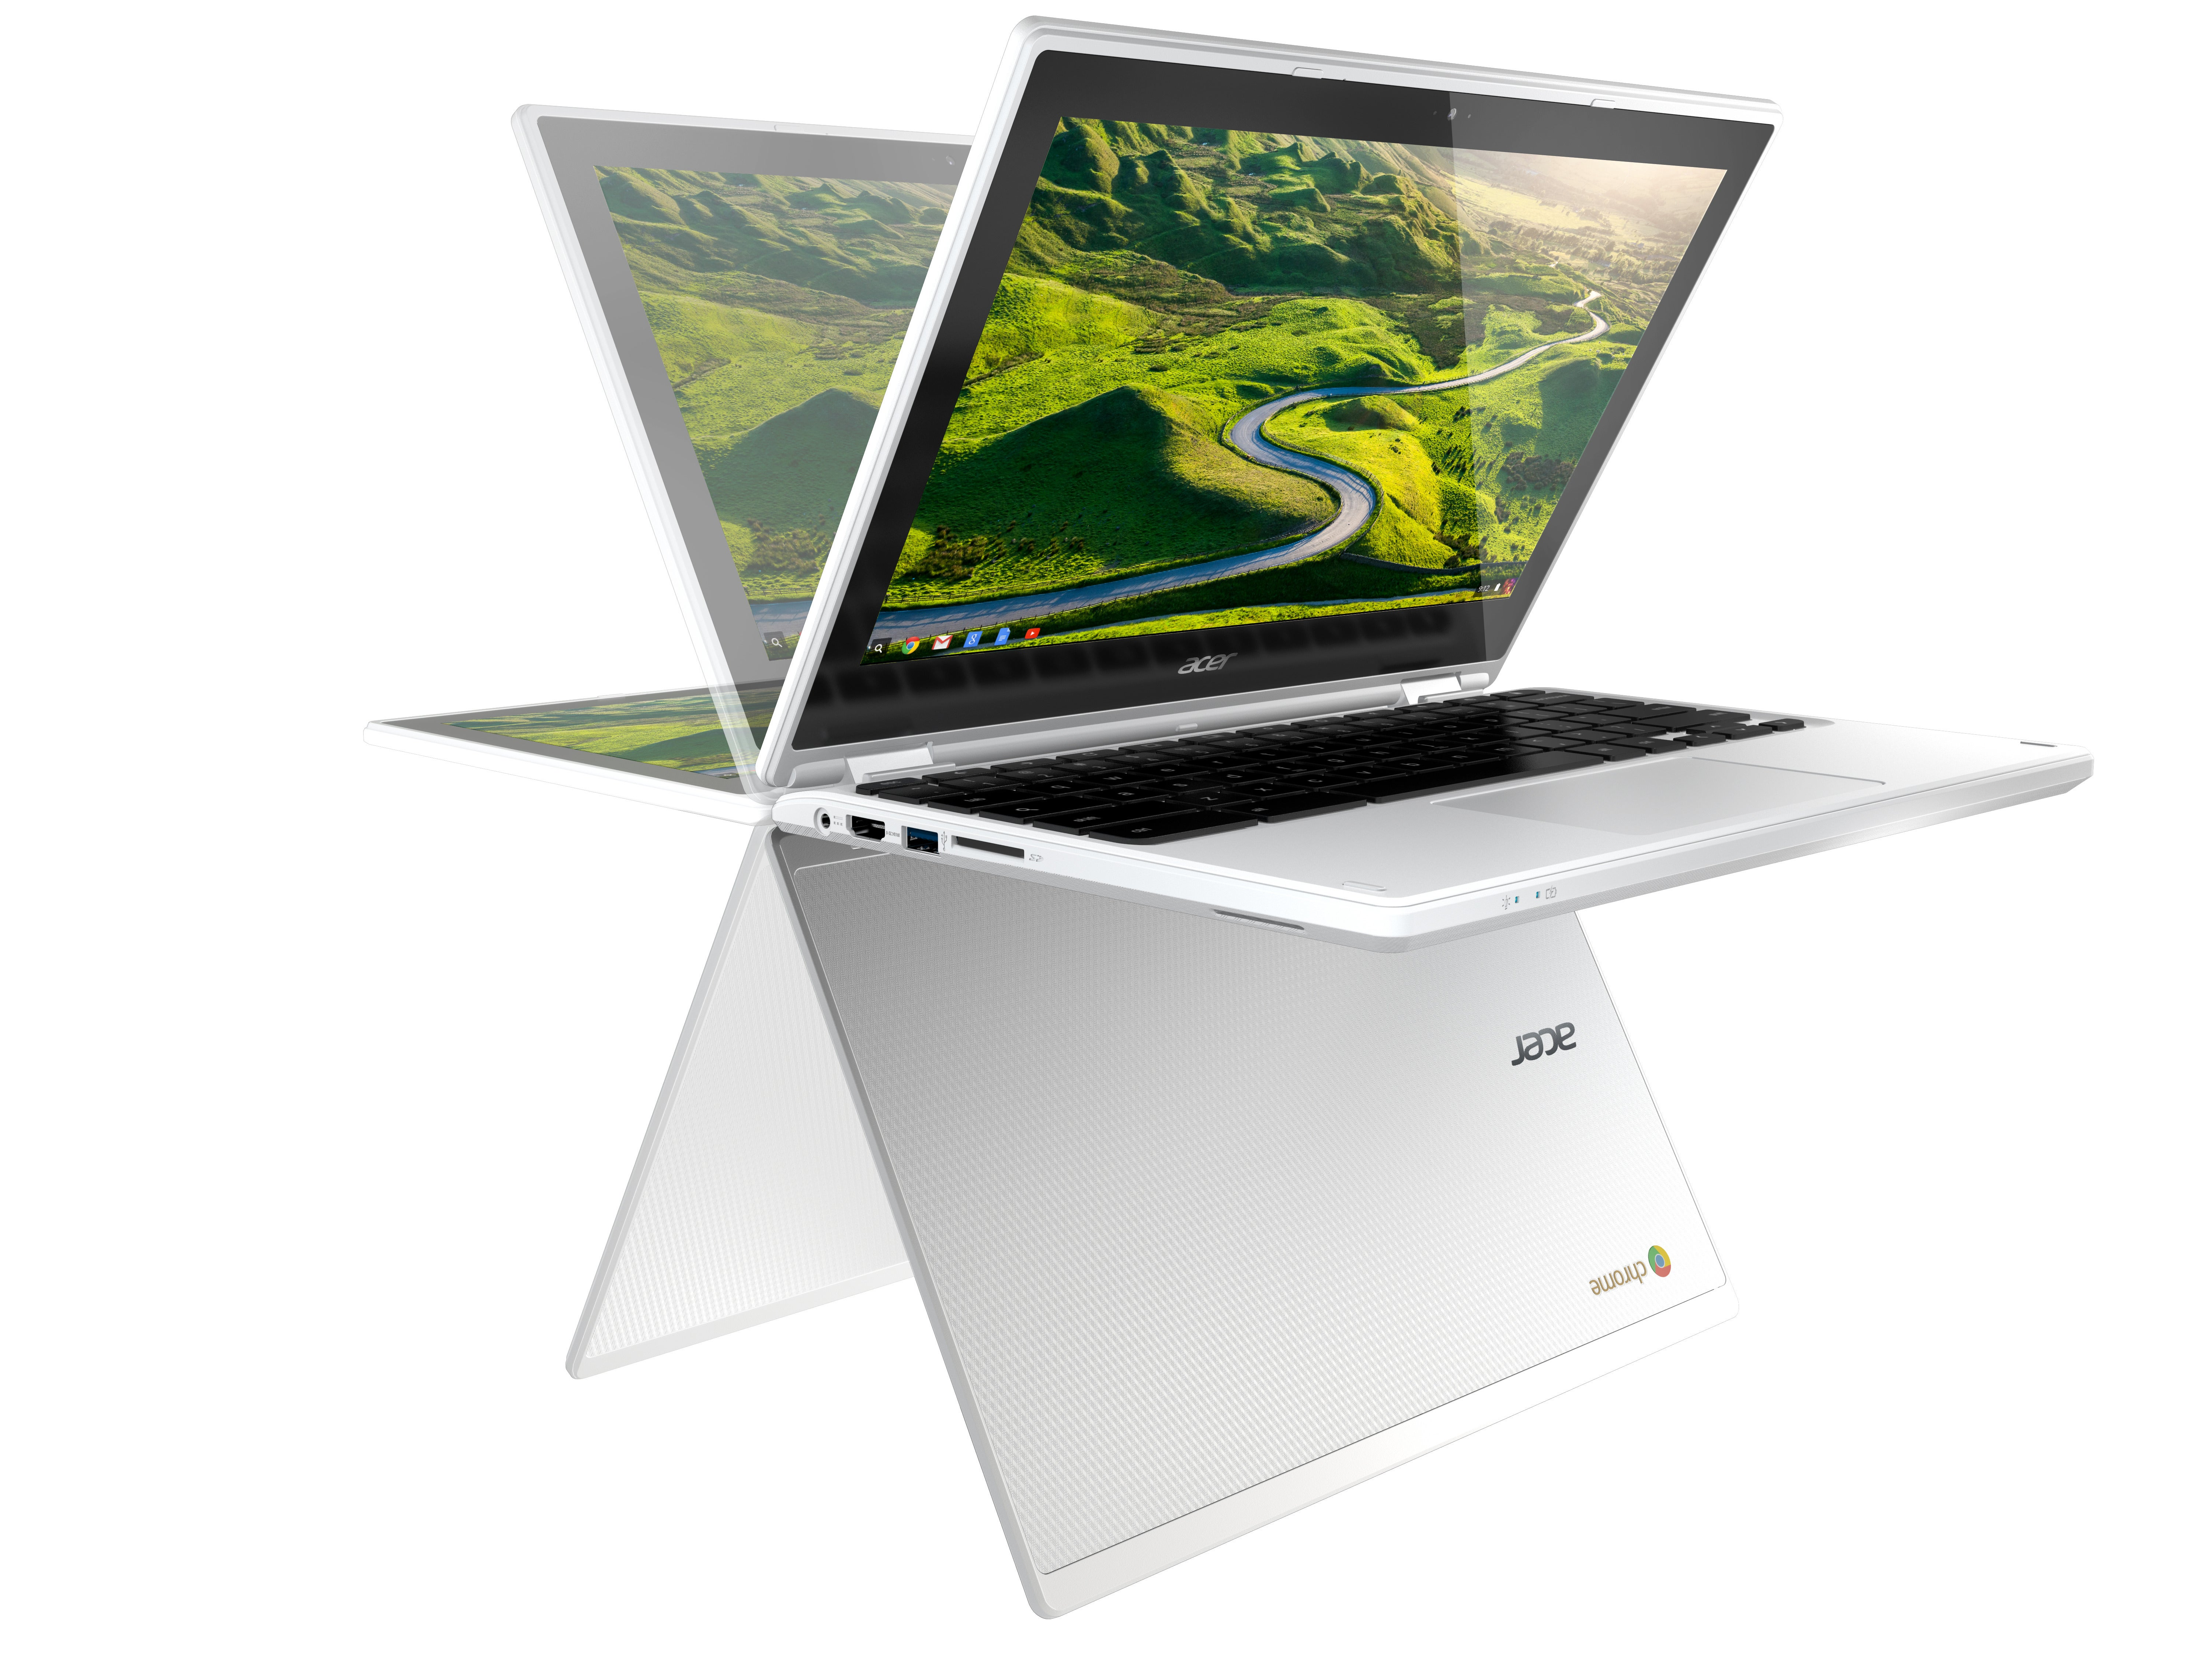 cheap and convertible chromebooks debut at ifa lenovo s 100s